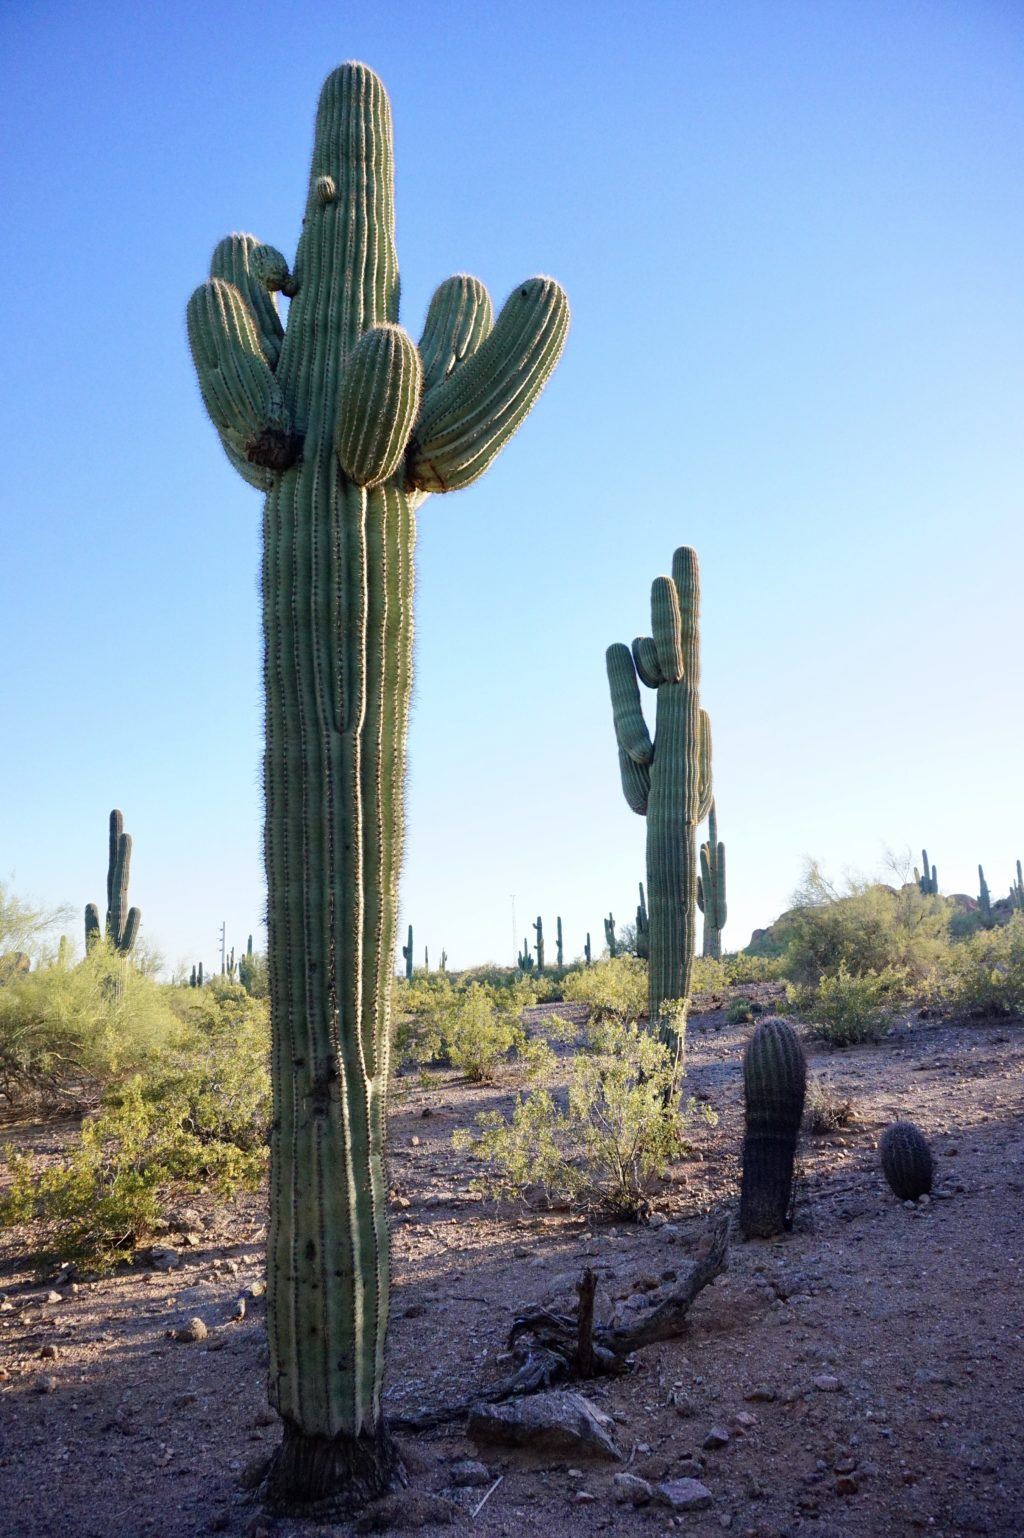 23 Pictures to Convince You to Visit the Desert Botanical Garden